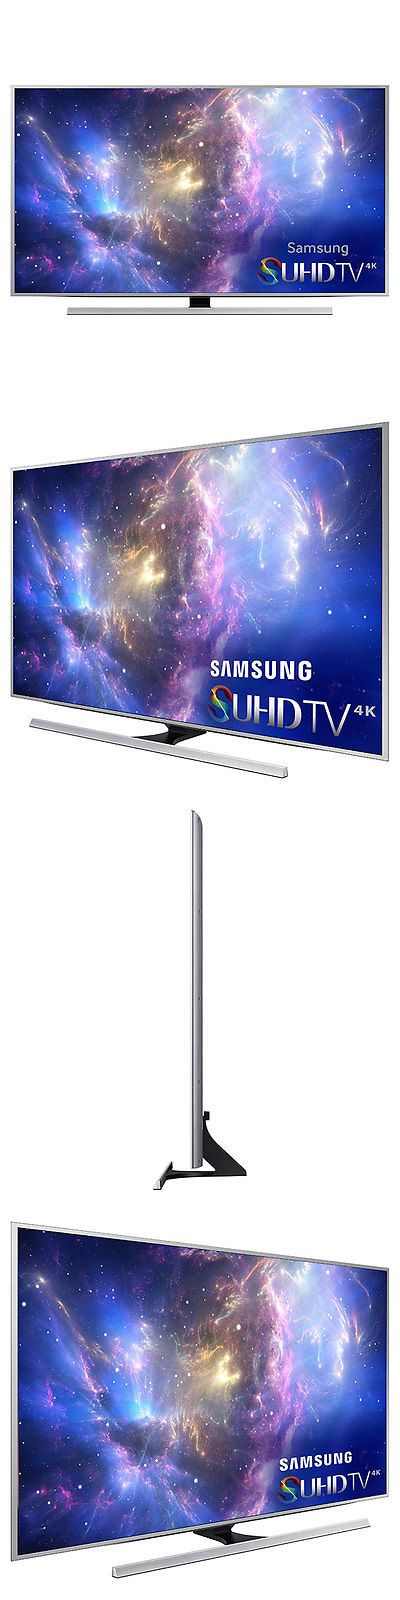 Televisions: Samsung Un78js8600 78-Inch 4K Suhd Ultra Hd Smart Led Tv -> BUY IT NOW ONLY: $3899 on eBay!